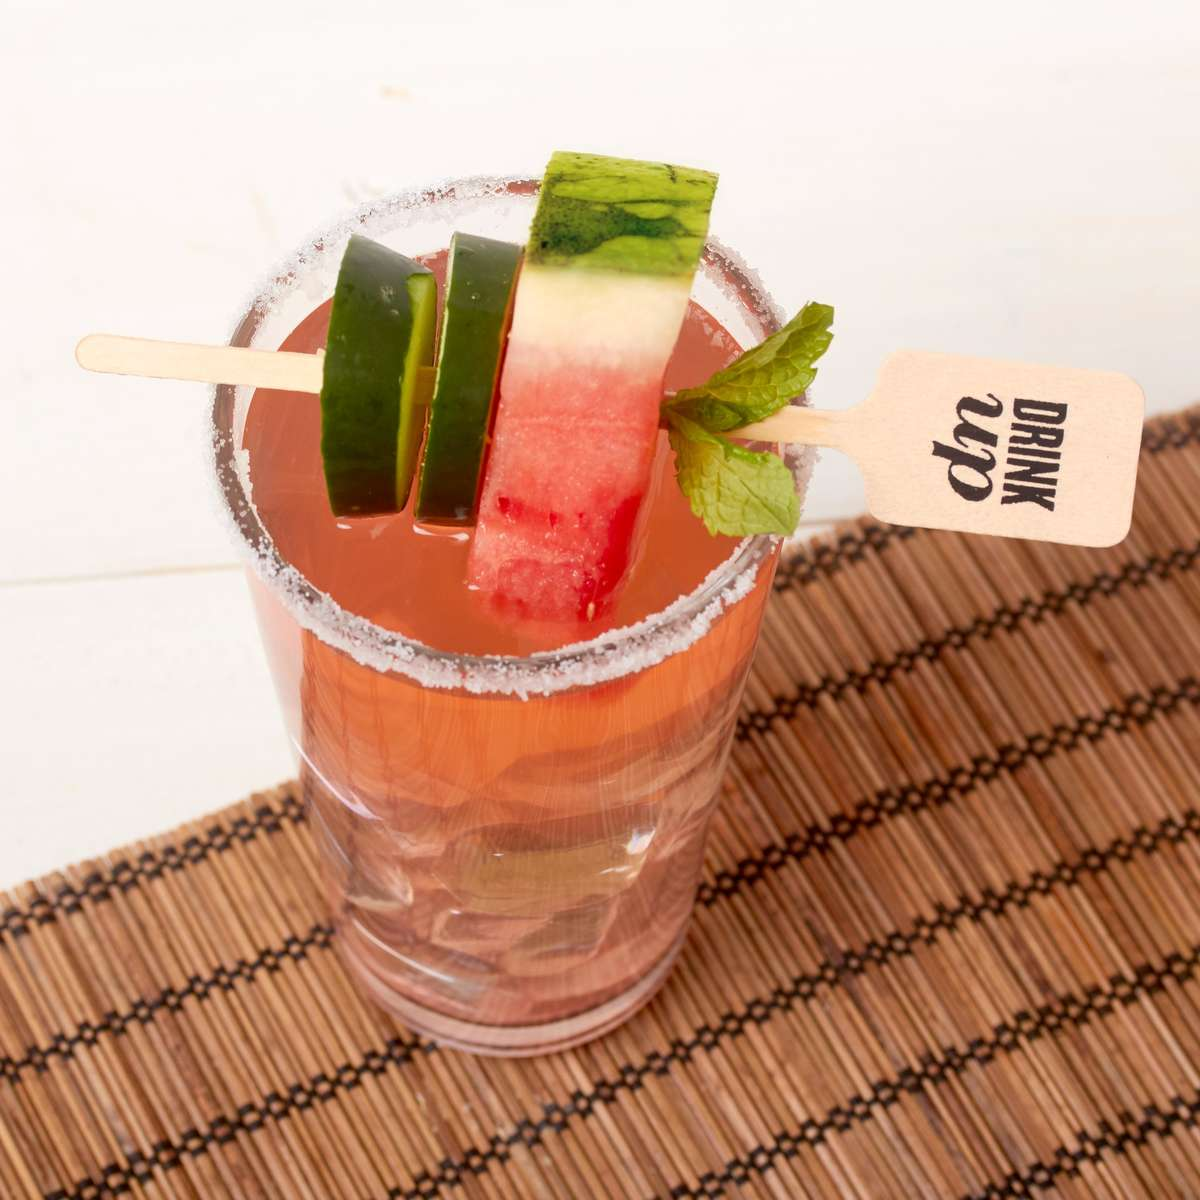 watermelon and cucumber cocktail with a custom drink stirrer